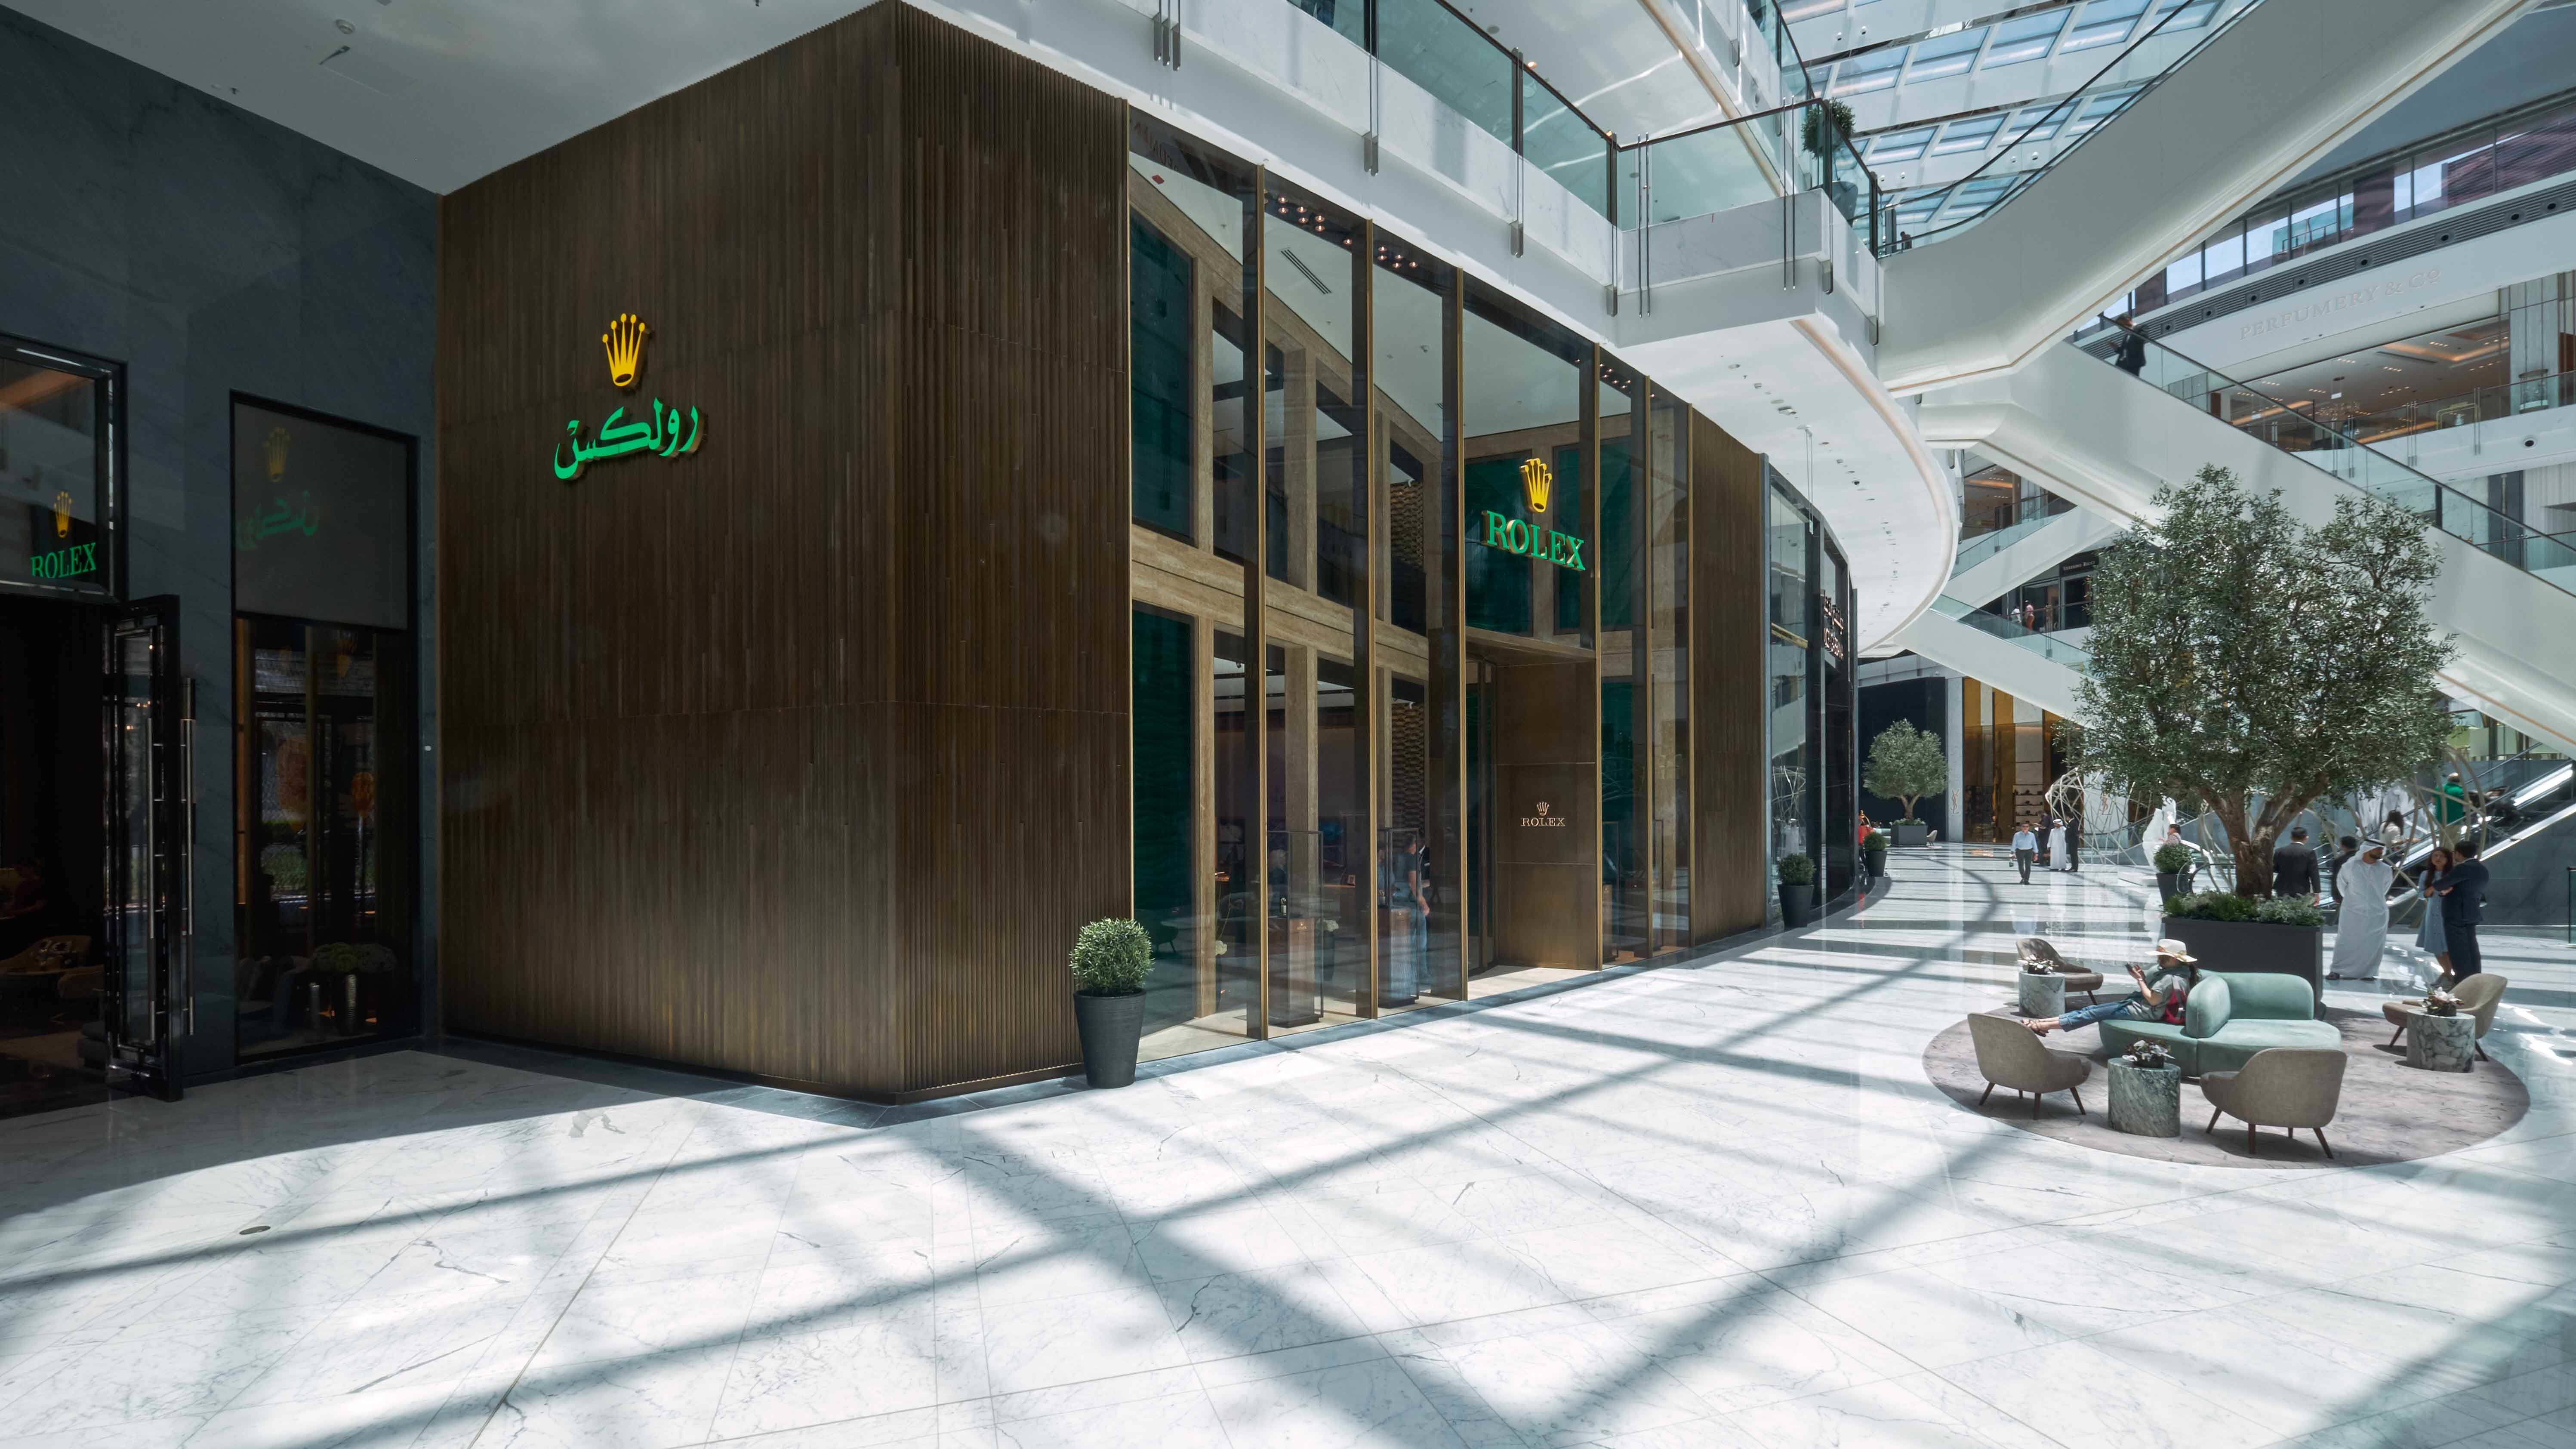 The Dubai Mall Is Now Home To The World's Biggest Rolex Boutique